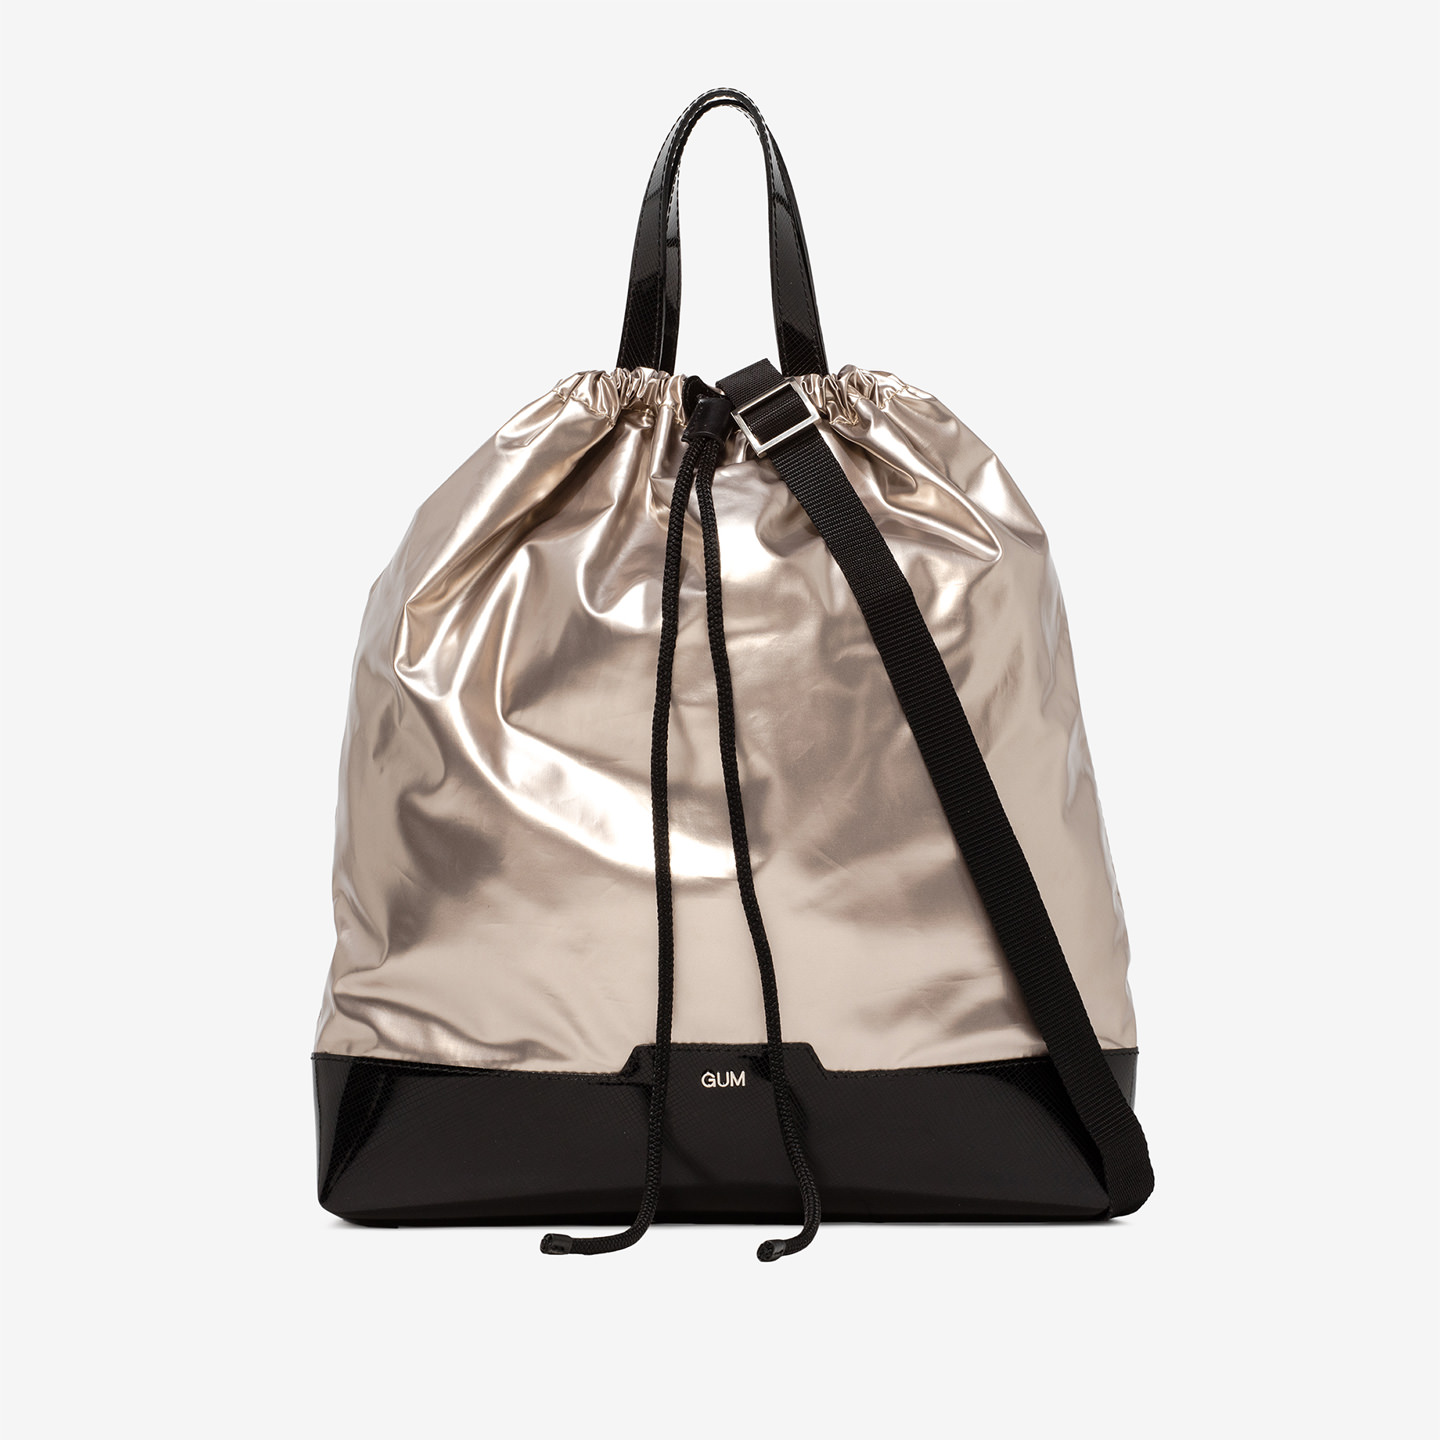 GUM: LARGE SIZE SACK WITH SHOULDER STRAP